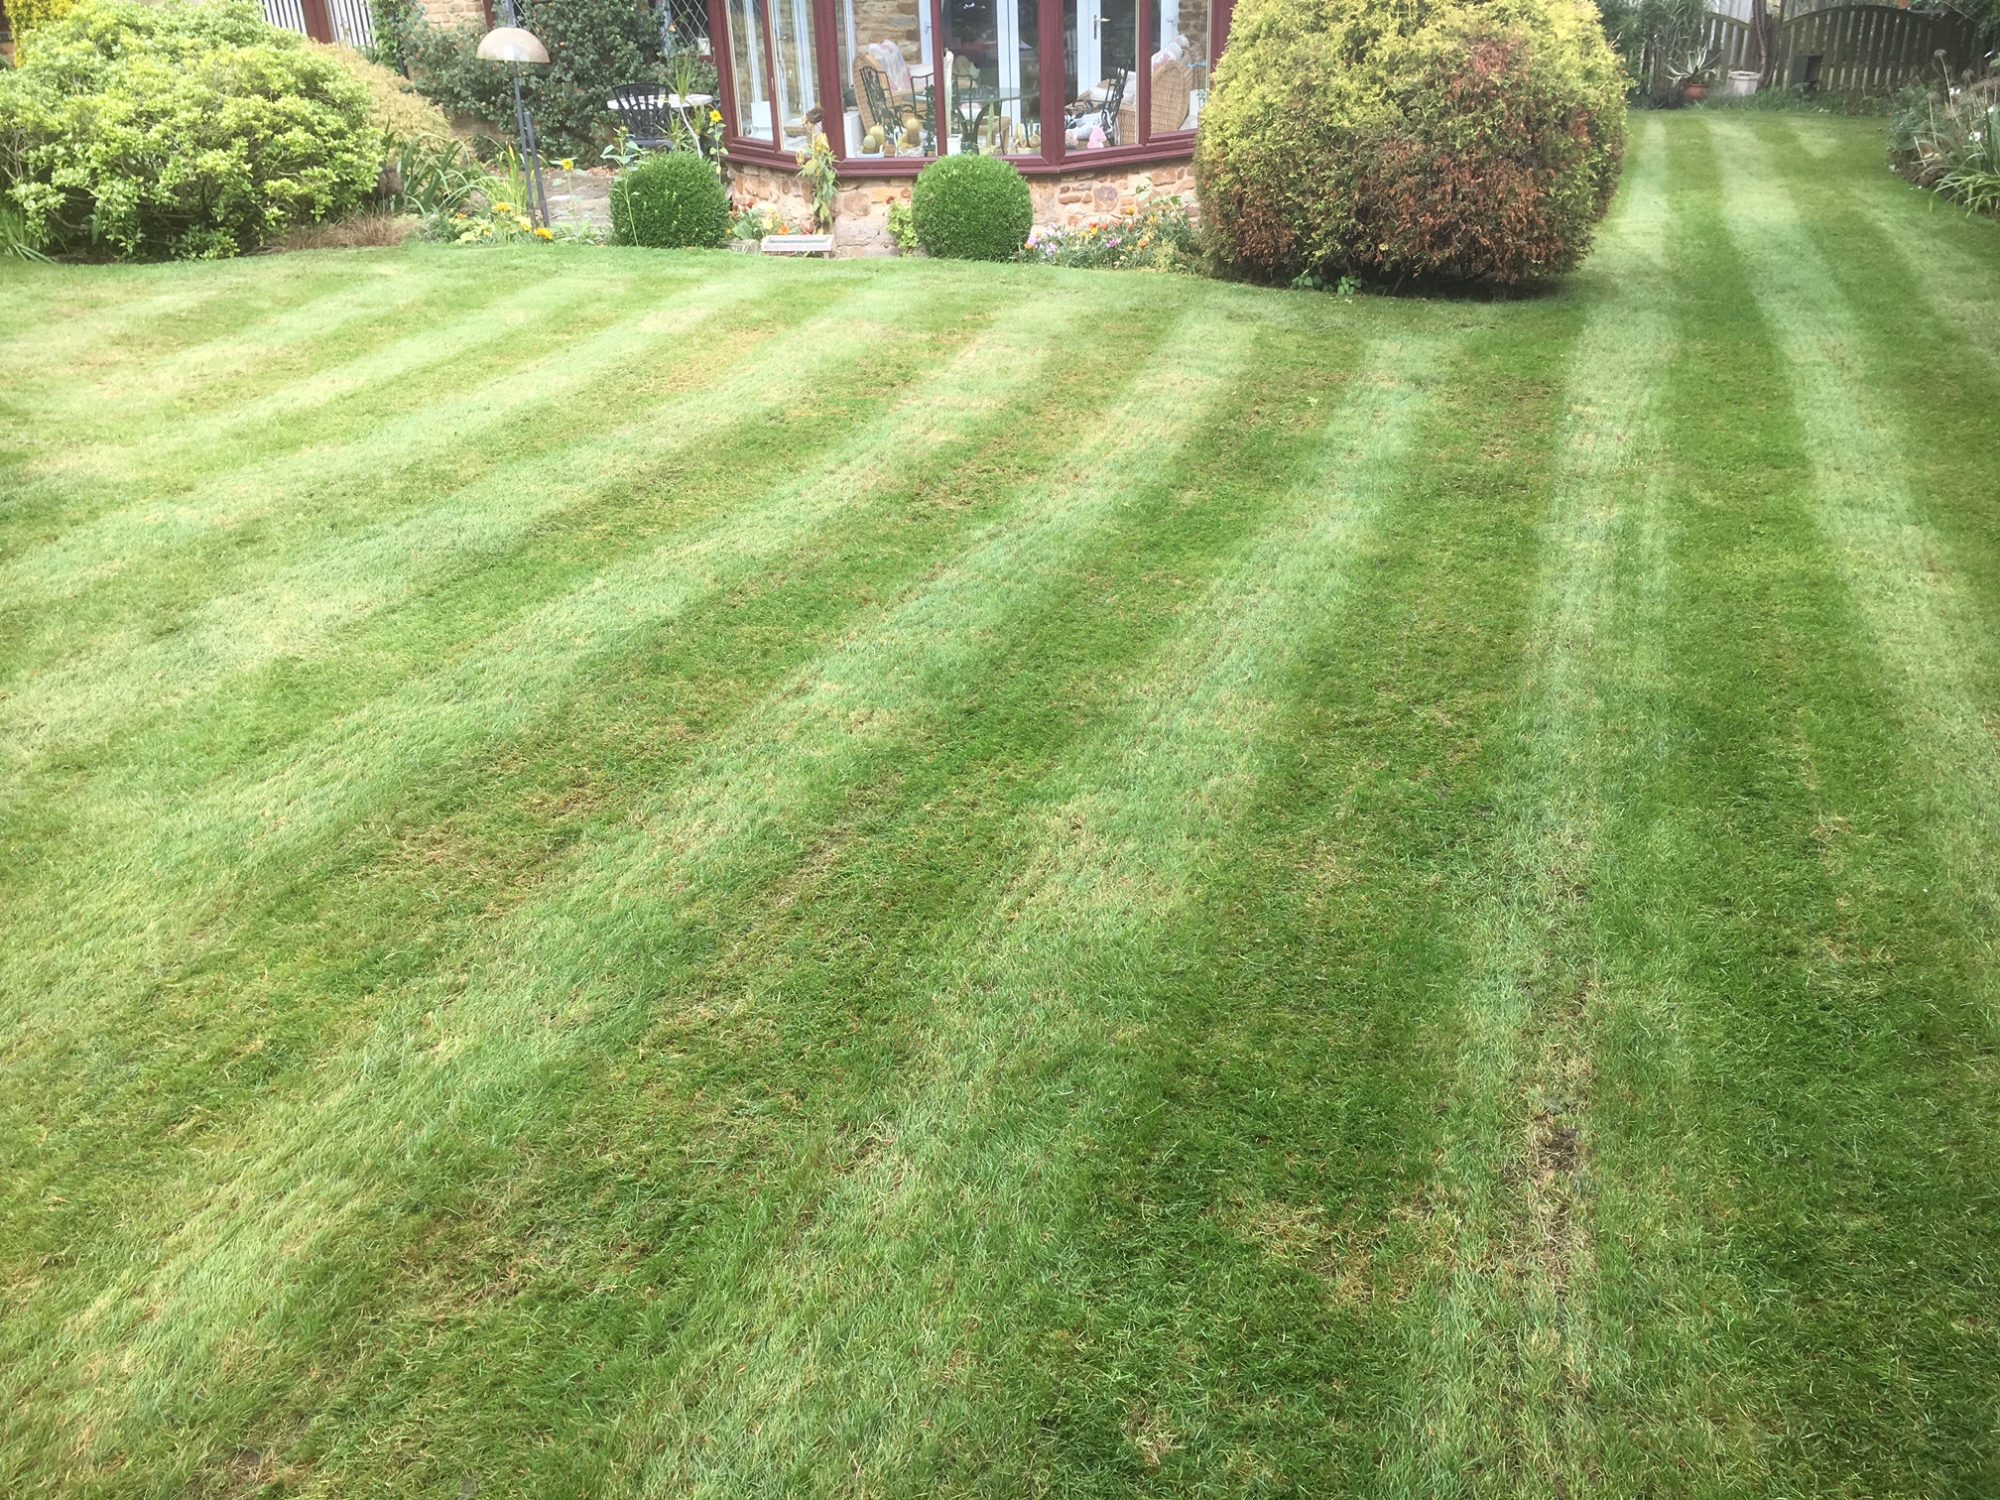 New Lawncare treatments Wappenham, Northamptonshire